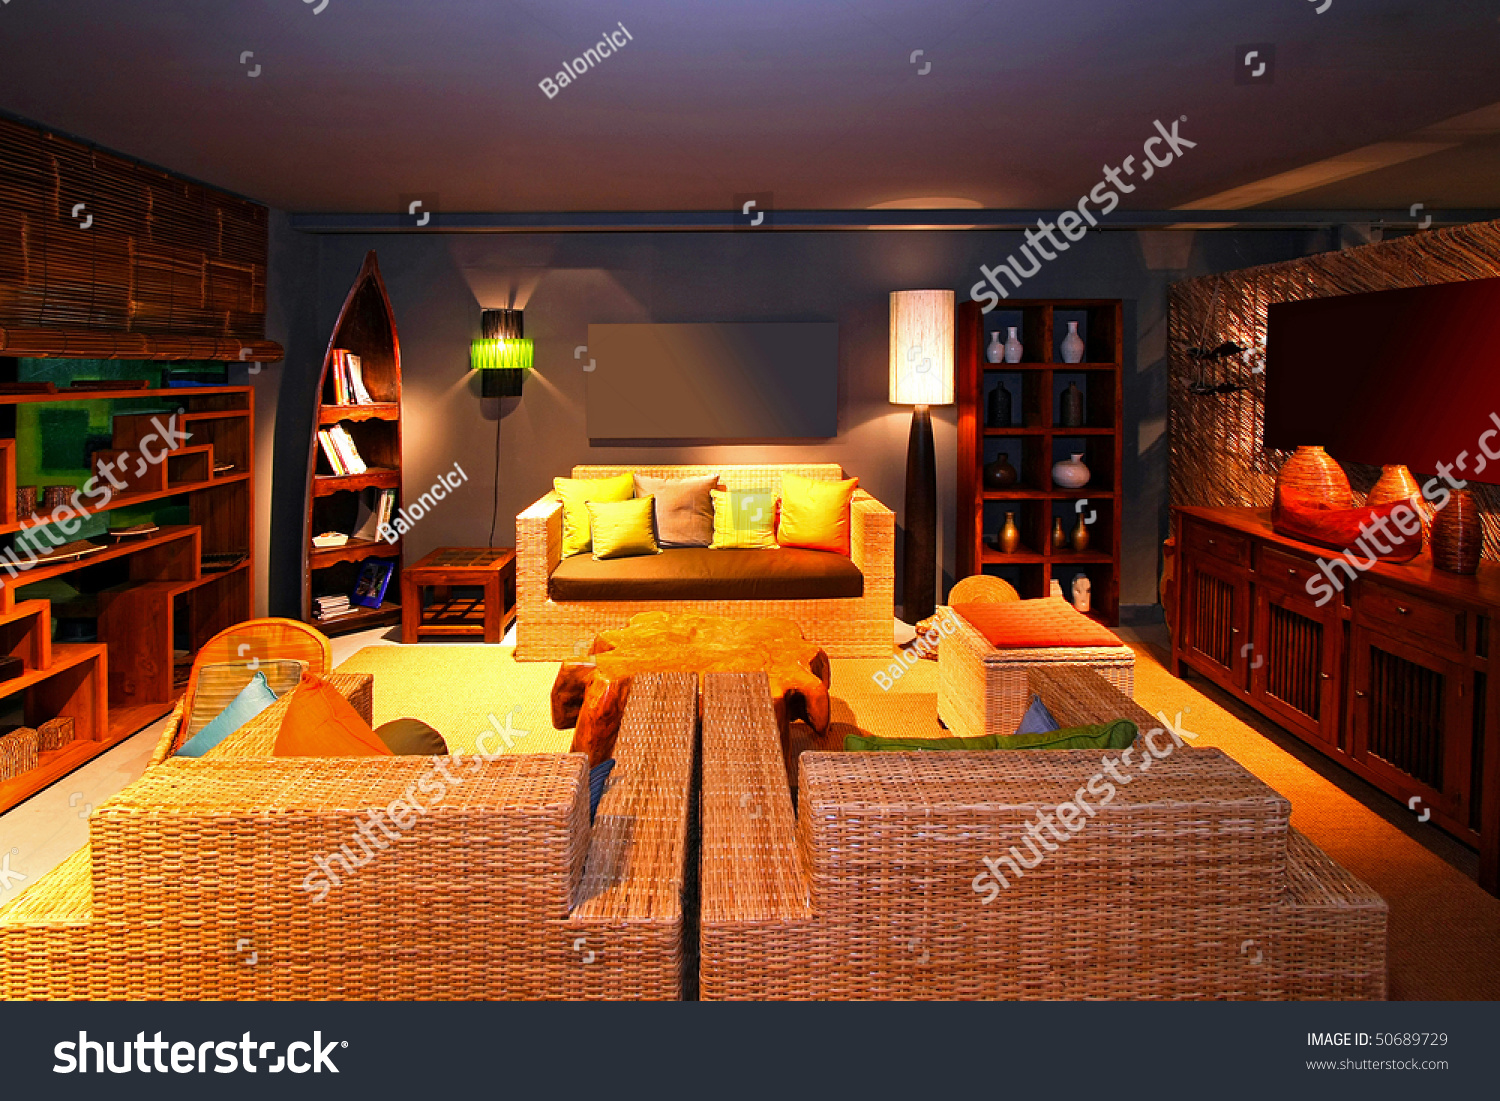 Oriental style living room with reed furniture stock photo 50689729 shutterstock for Oriental style living room furniture